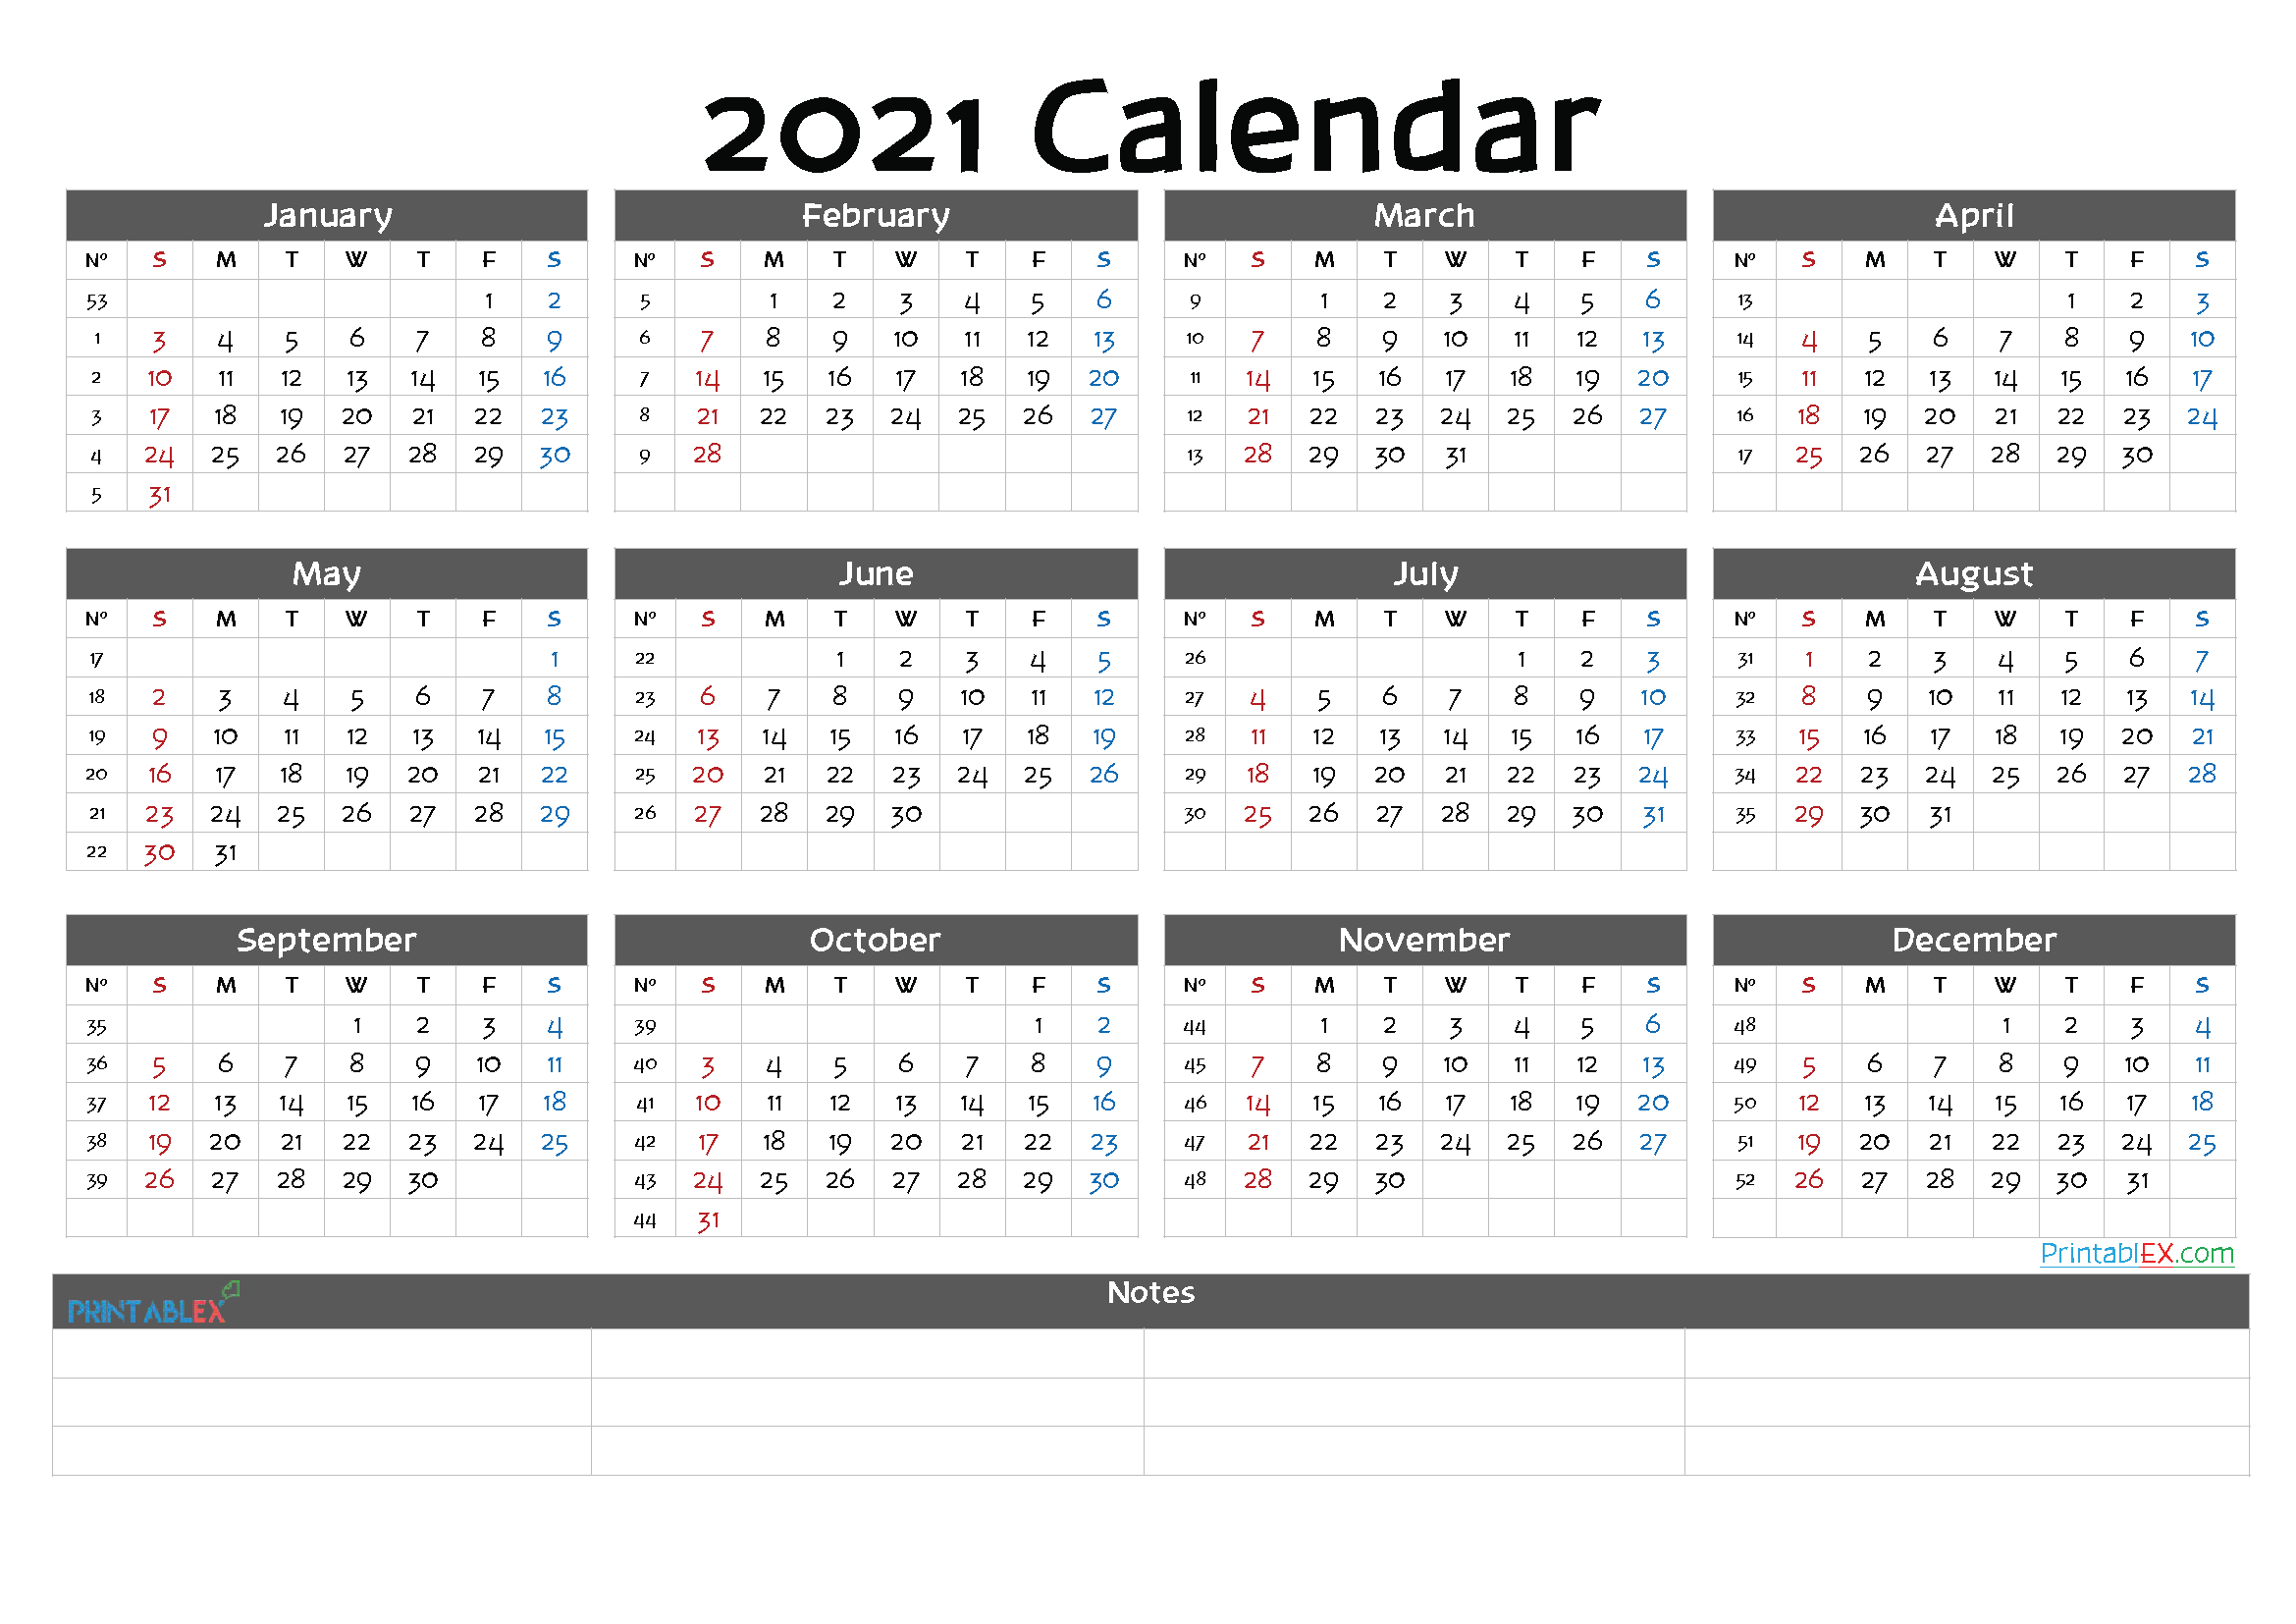 Printable 2021 Yearly Calendar (Font: jelly)